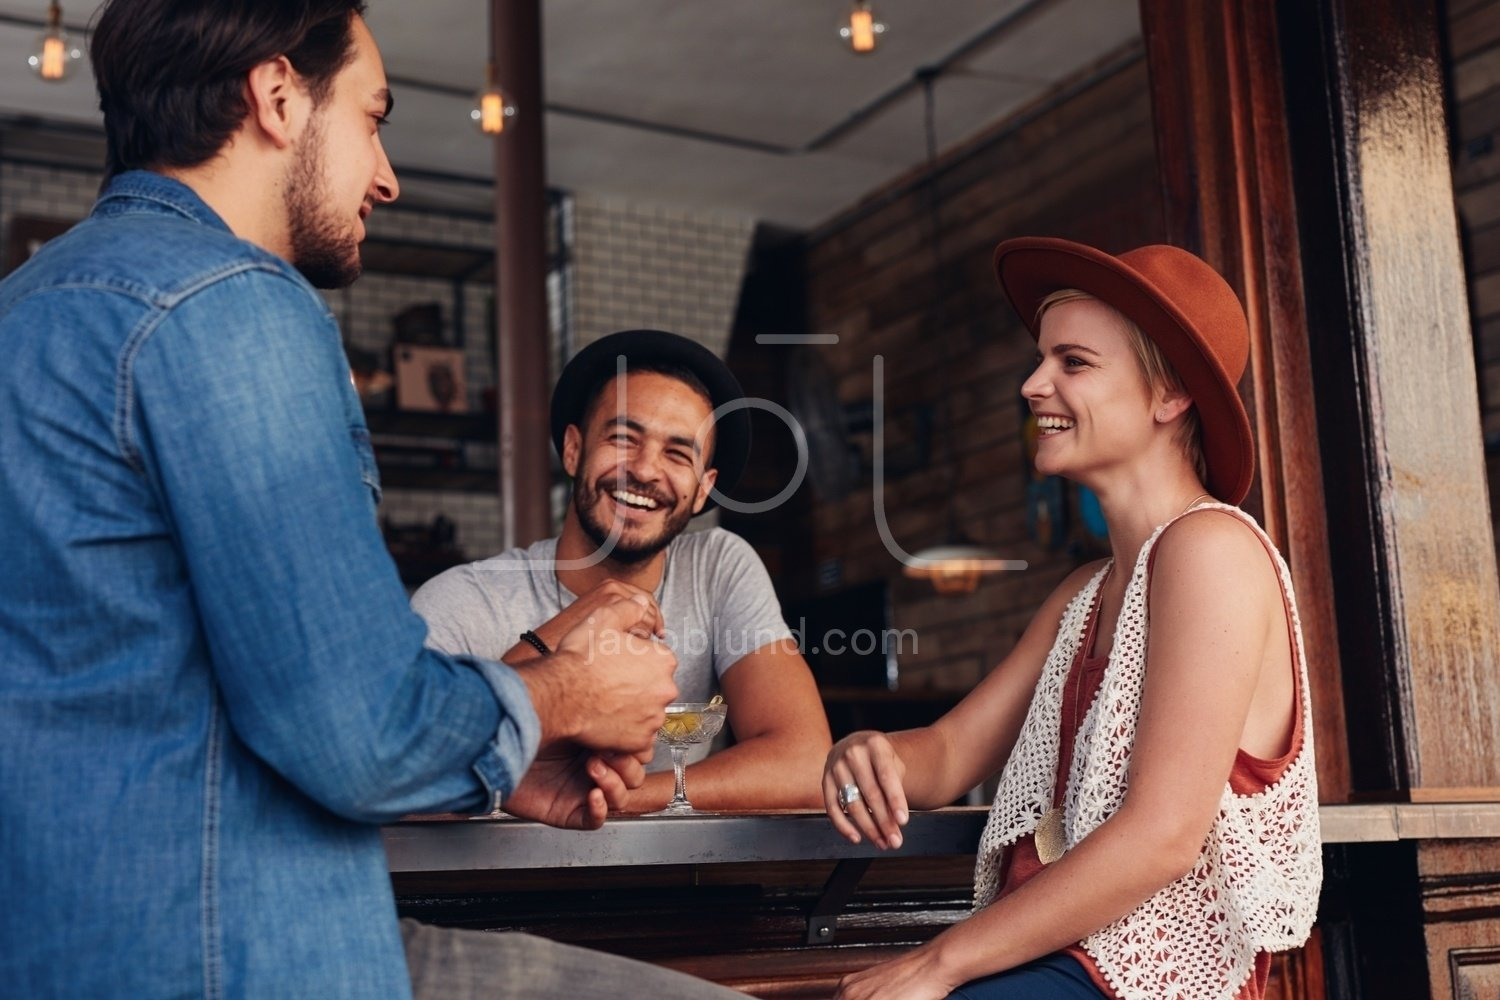 Young People Hanging Out At A Cafe Jacob Lund Photography Store Premium Stock Photo